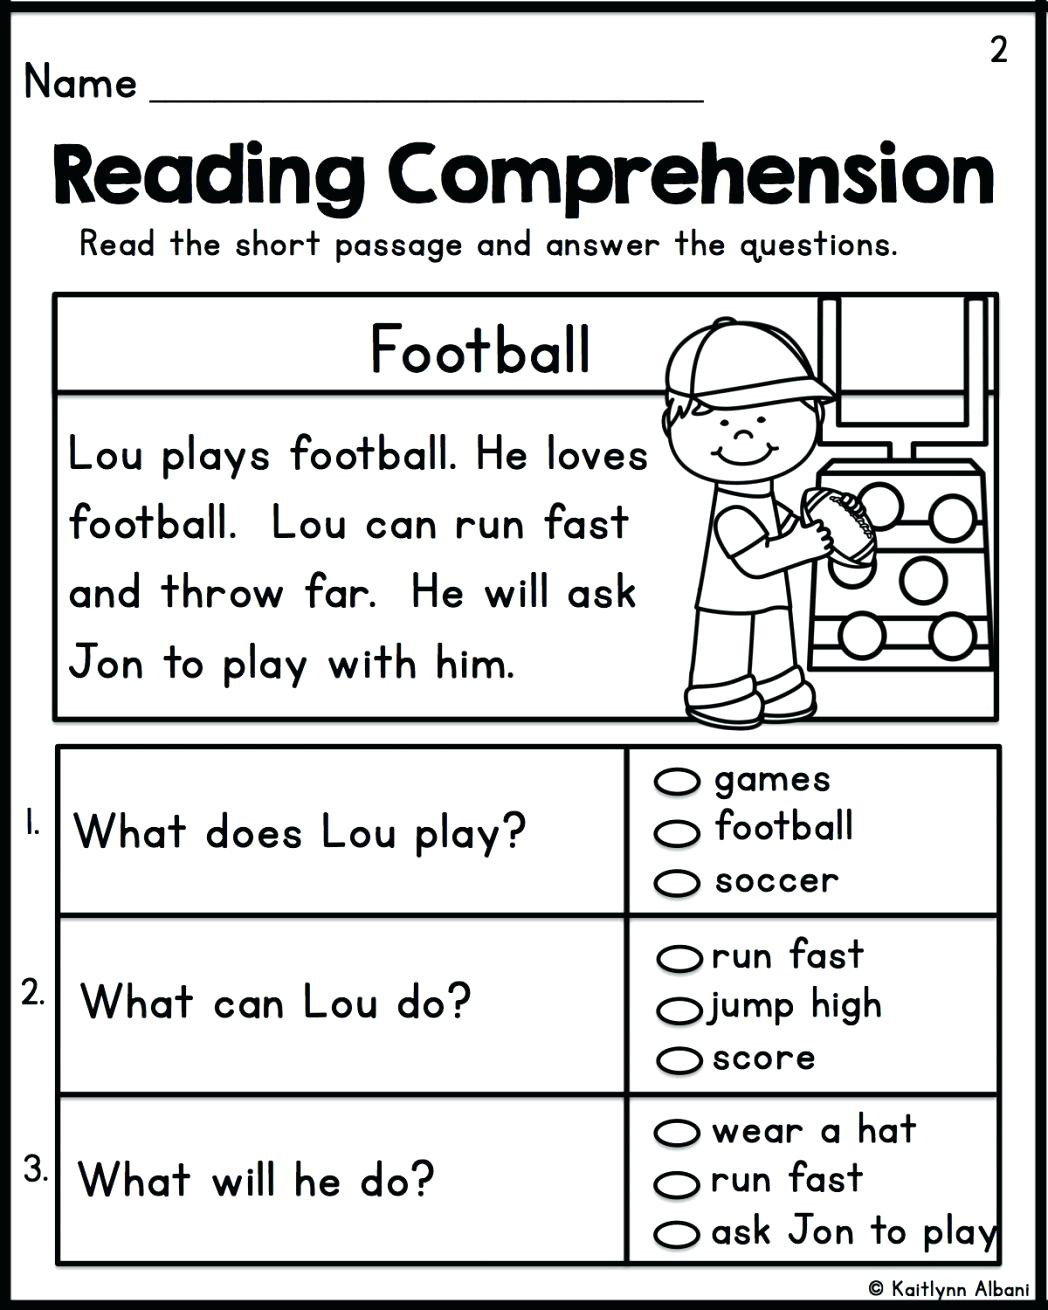 Free 1st Grade Comprehension Worksheets Math Worksheet Reading Prehension Practice 1st Grade